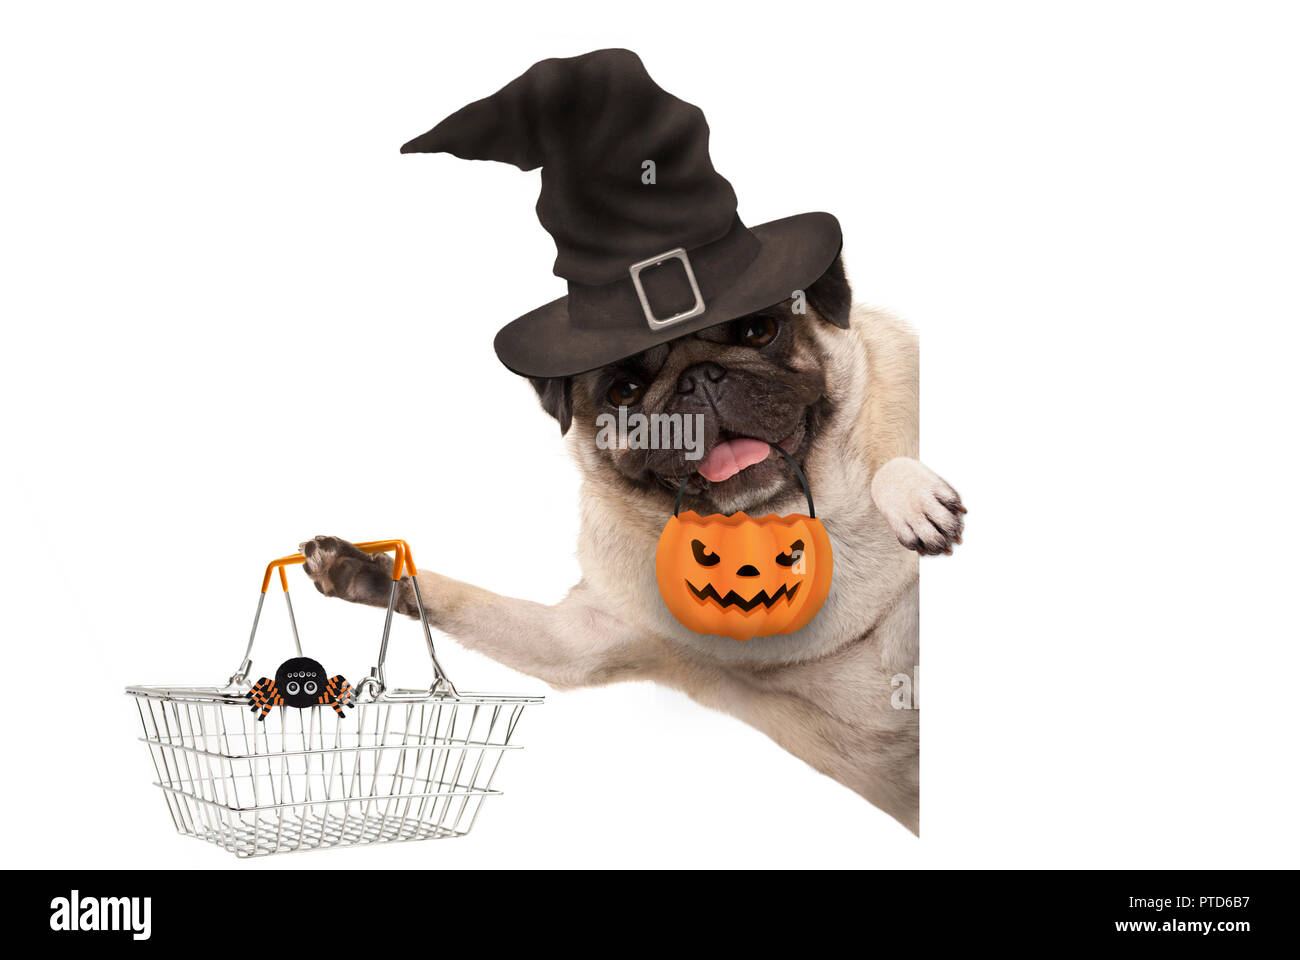 smiling pug puppy dog holding up metal grocery basket, wearing witch hat and carved pumpkin lantern, behind white banner, isolated Stock Photo